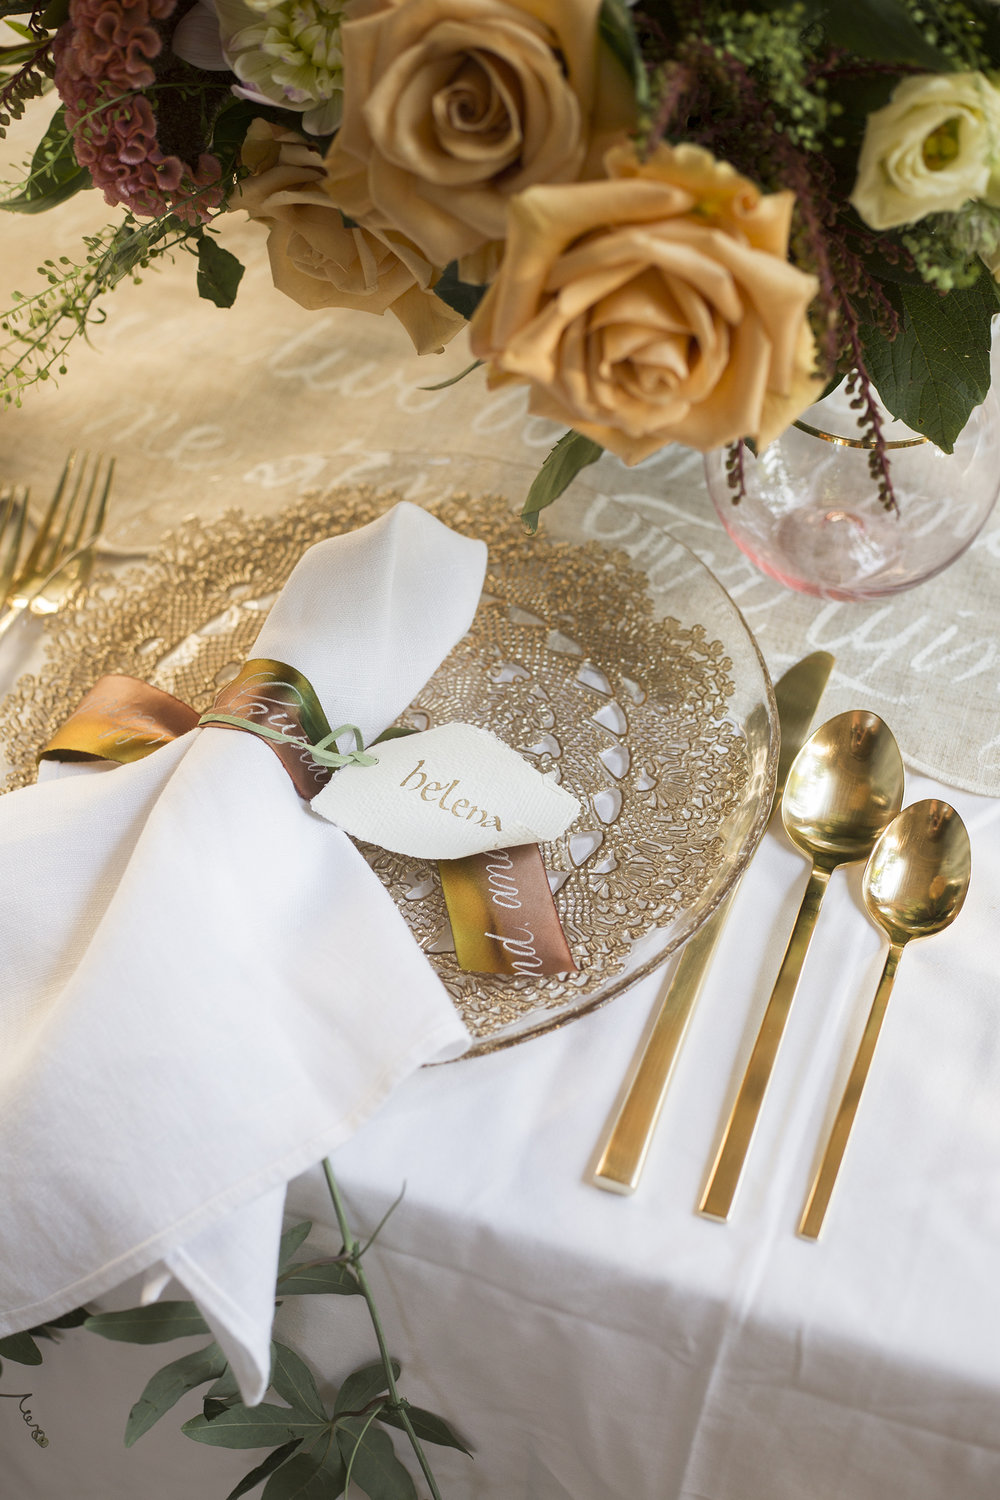 Silk ribbons with calligraphy and scroll place cards   www.chavelli.com